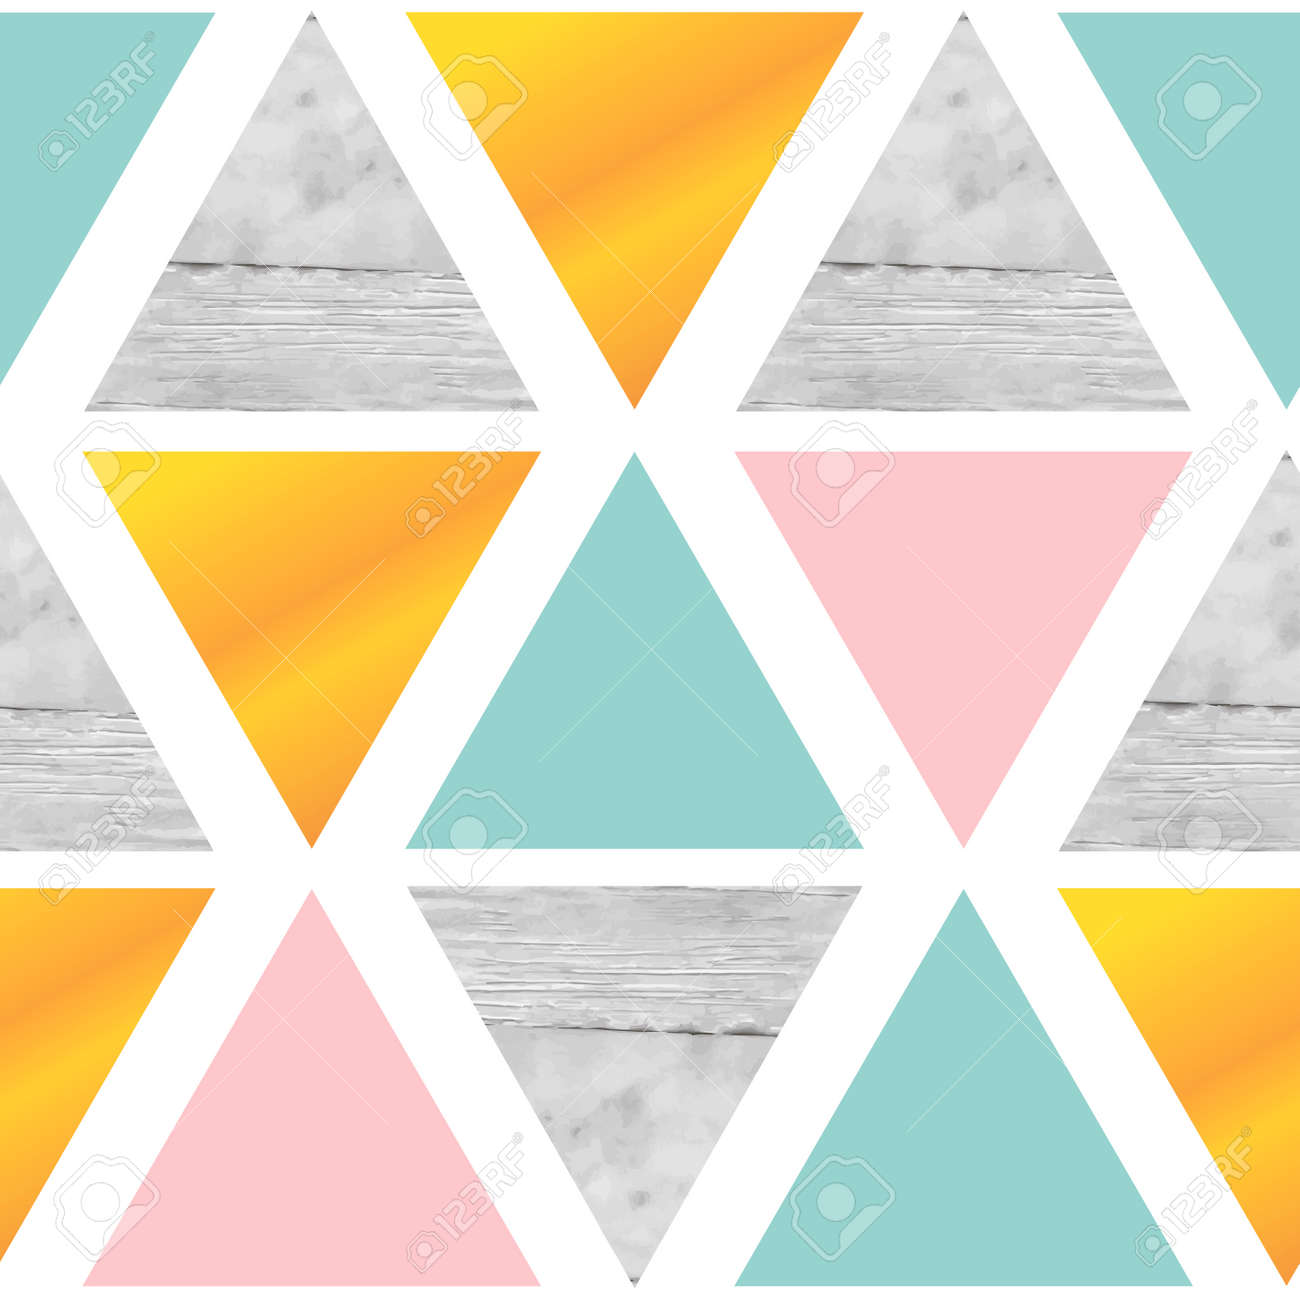 Triangular Geometrical Background With Marble Gold Pink Mint